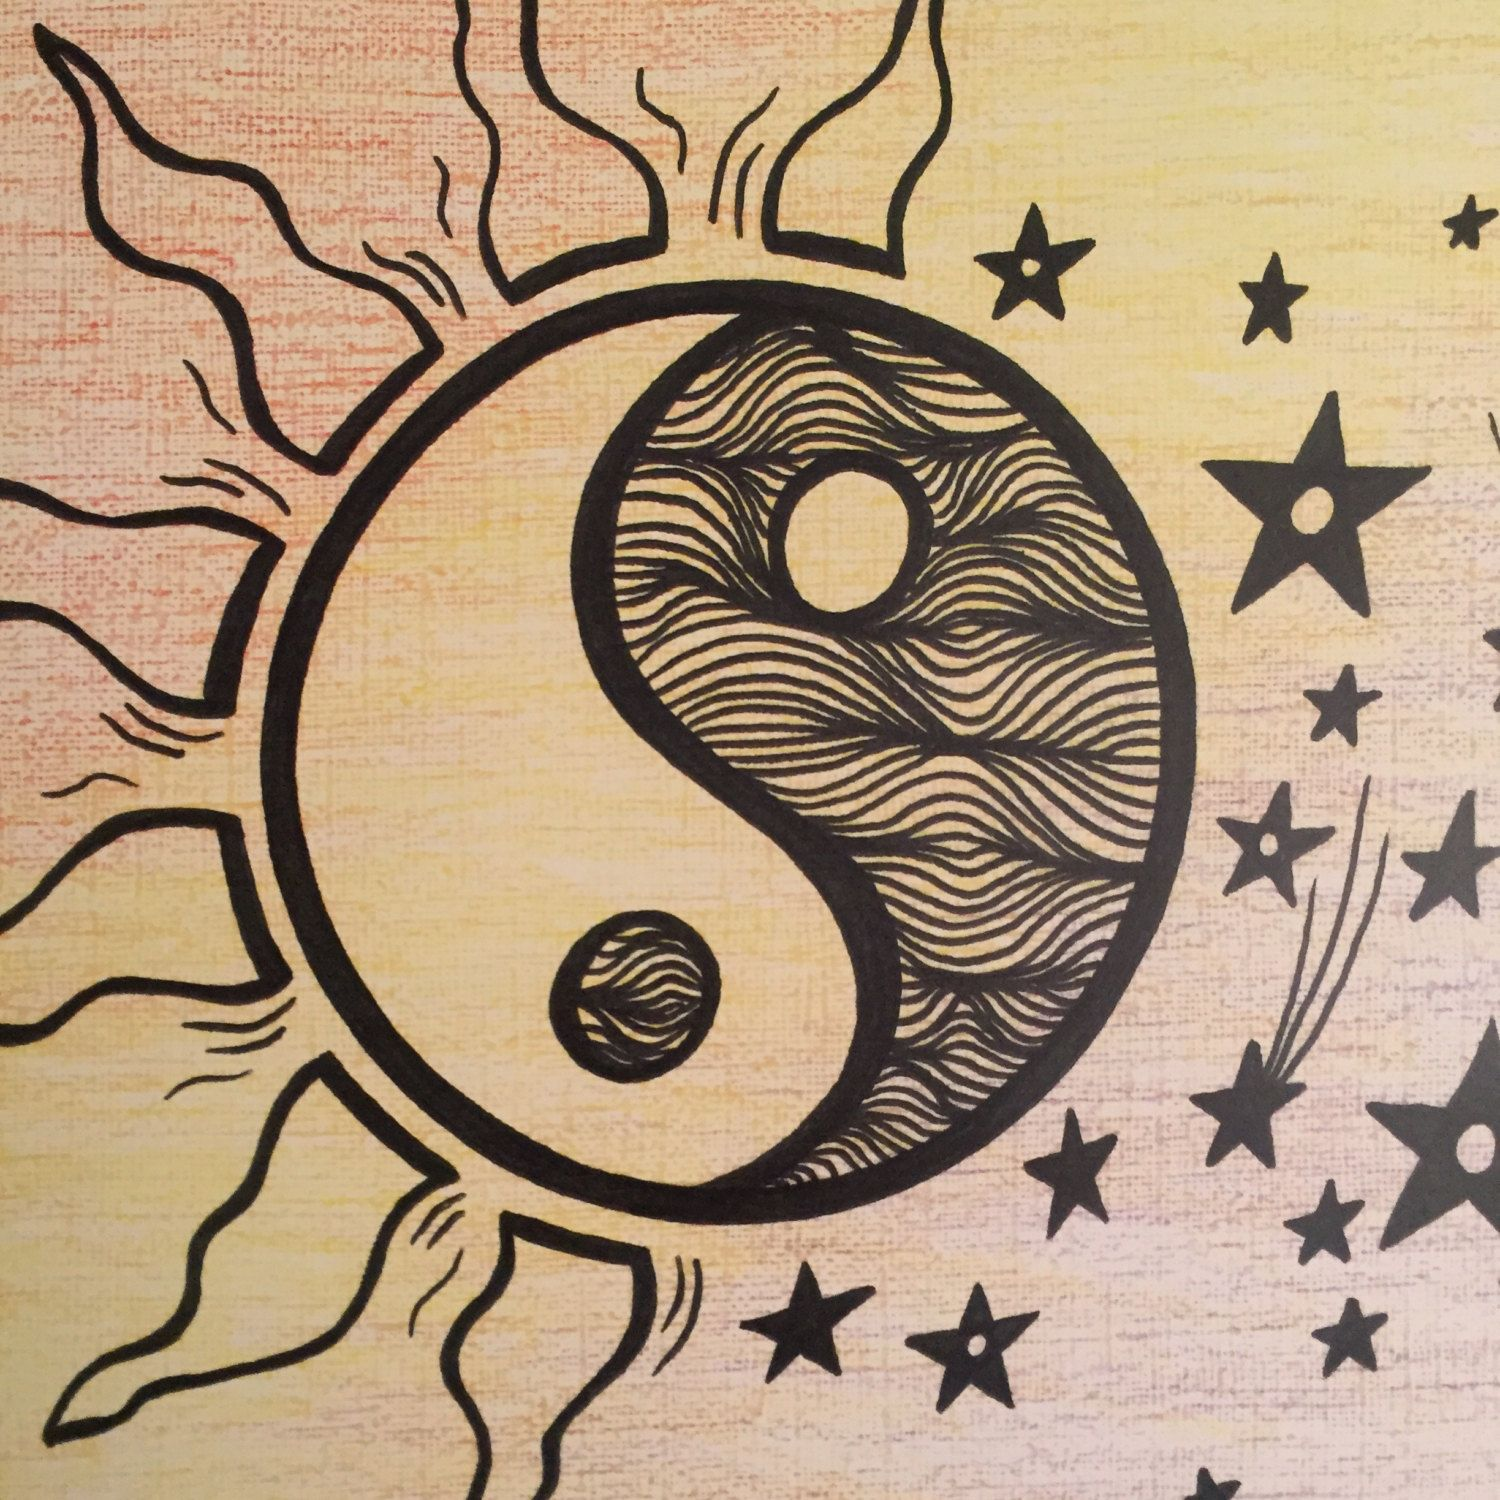 Day Night Ying Yang Prints Multicolored Colored Pencil Paint Ying Yang Art Ying Yang Ying Yang Tattoo